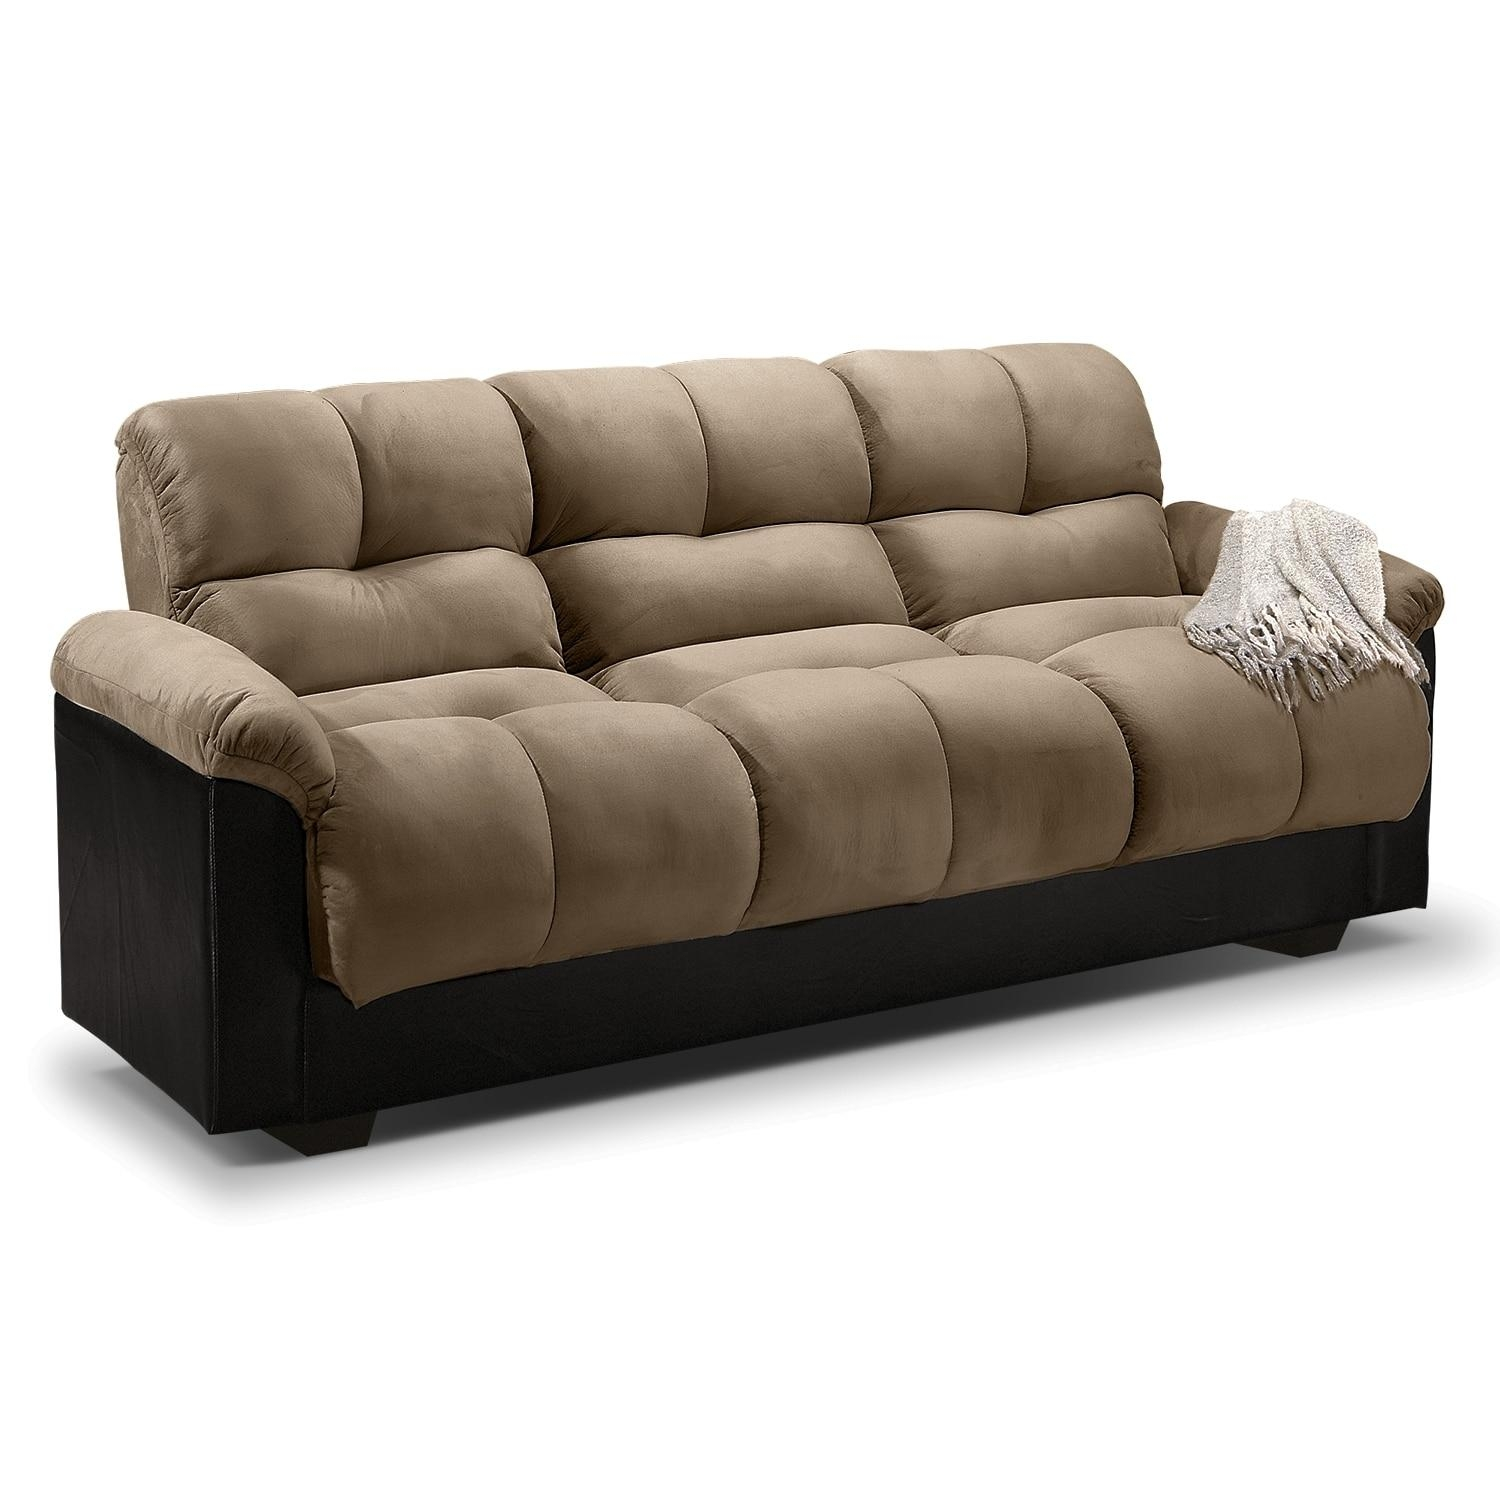 Ara Upholstery Futon Sofa Bed With Storage – Value City Furniture Intended For City Sofa Beds (Image 1 of 20)